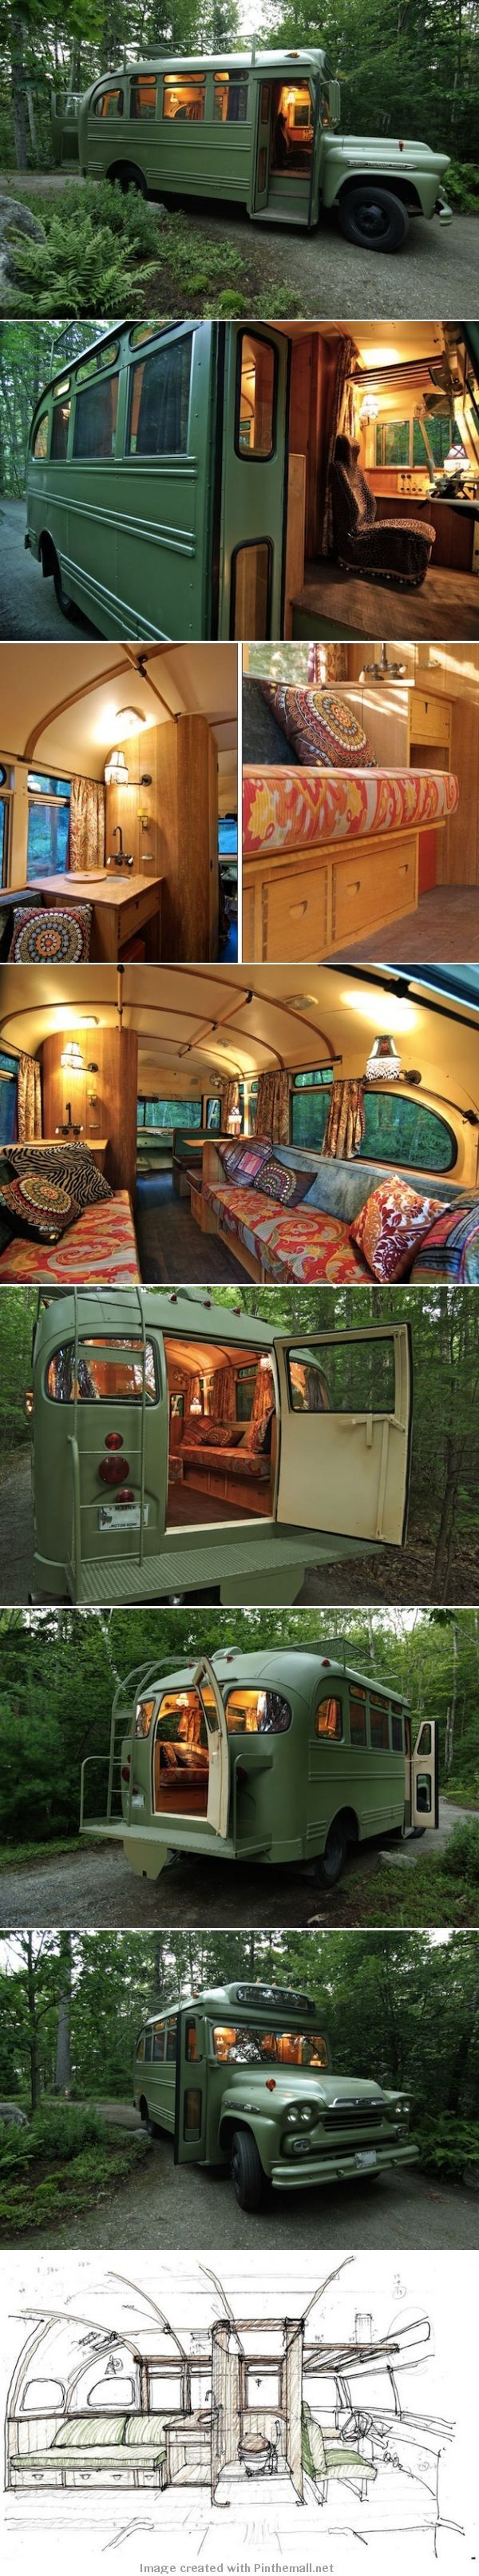 Majestic 90+ Interior Design Ideas for Camper Van https://decoratio.co/2017/03/90-interior-design-ideas-camper-van/ In thisArticle You will find many example and ideas from other camper van and motor homes. Hopefully these will give you some good ideas also.